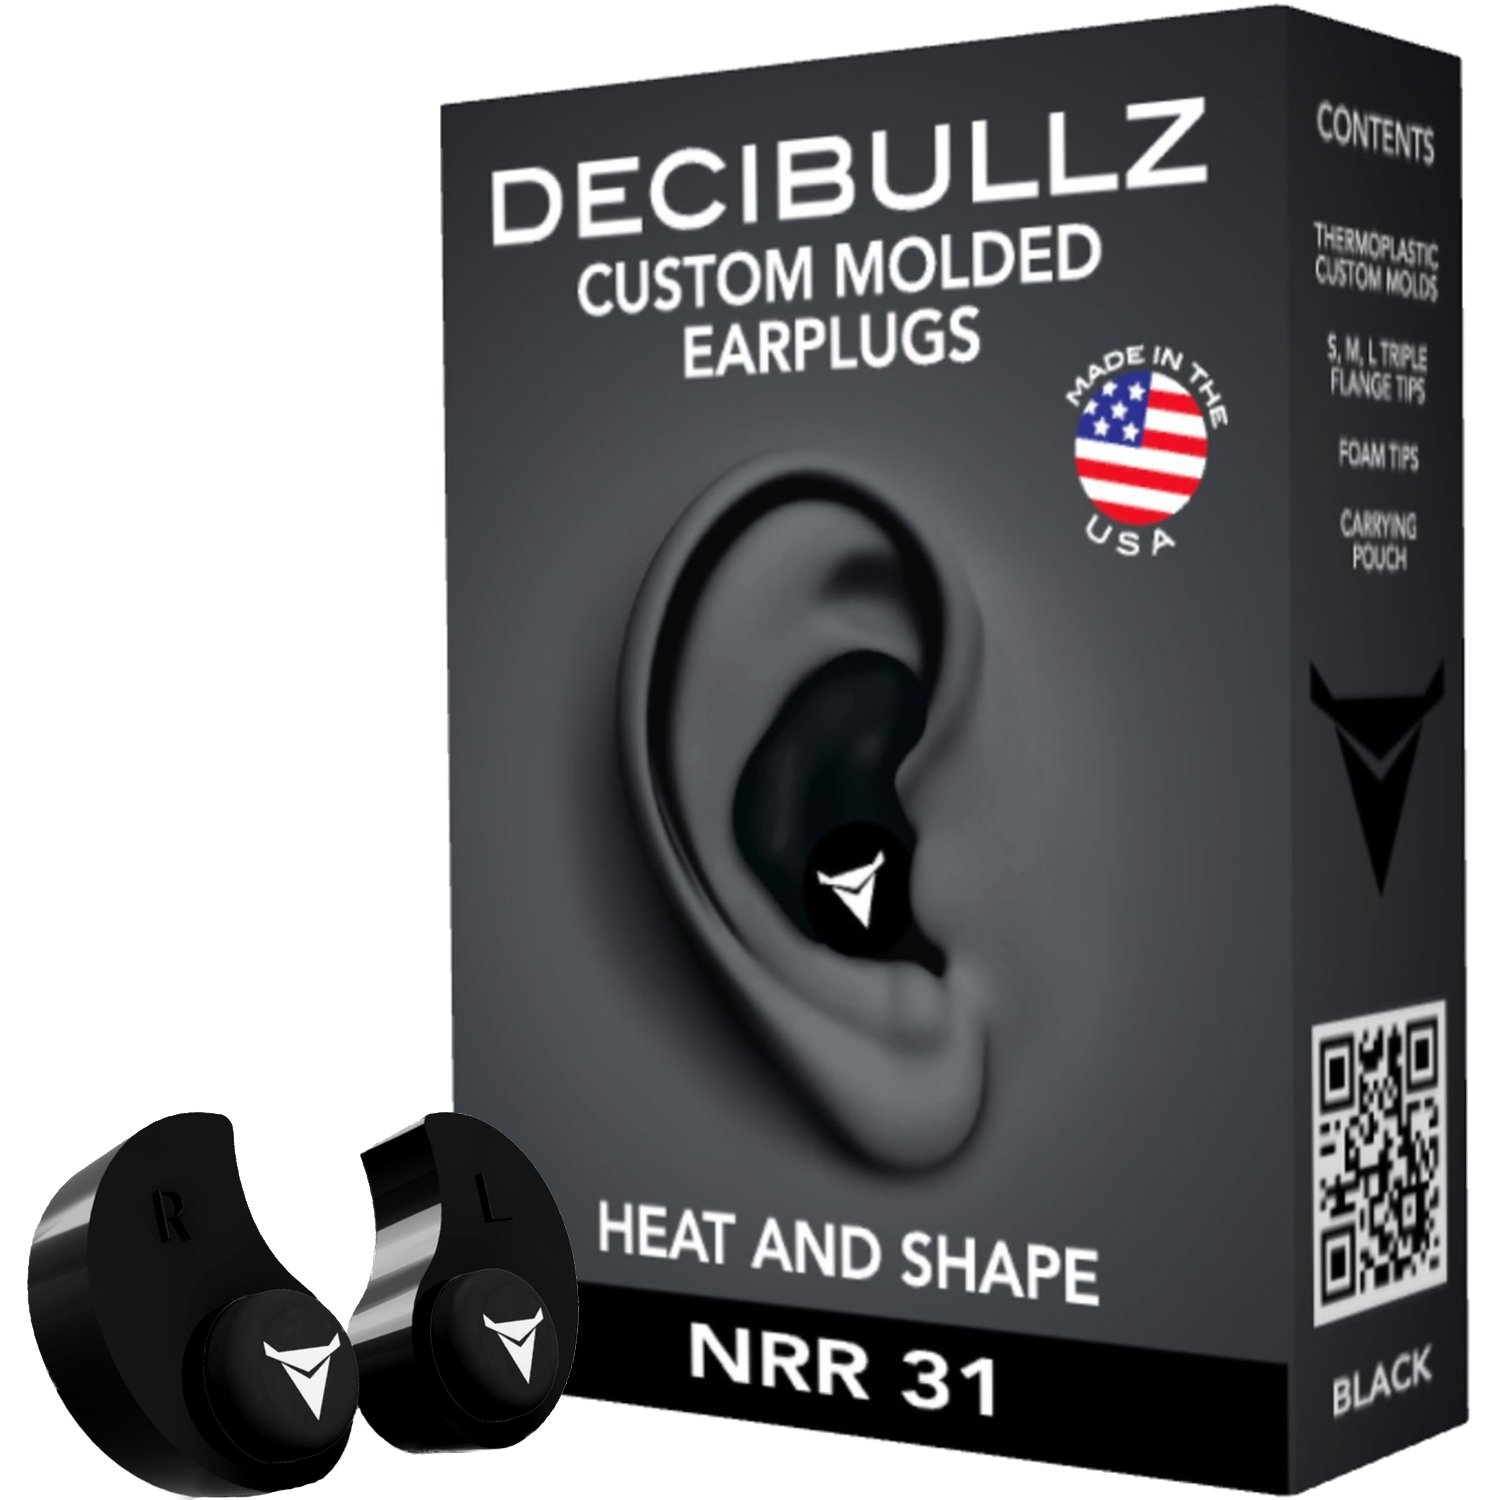 Decibullz - Custom Molded Earplugs, 31dB Highest NRR, Comfortable Hearing Protection for Shooting, Travel, Swimming, Work and Concerts (Black)